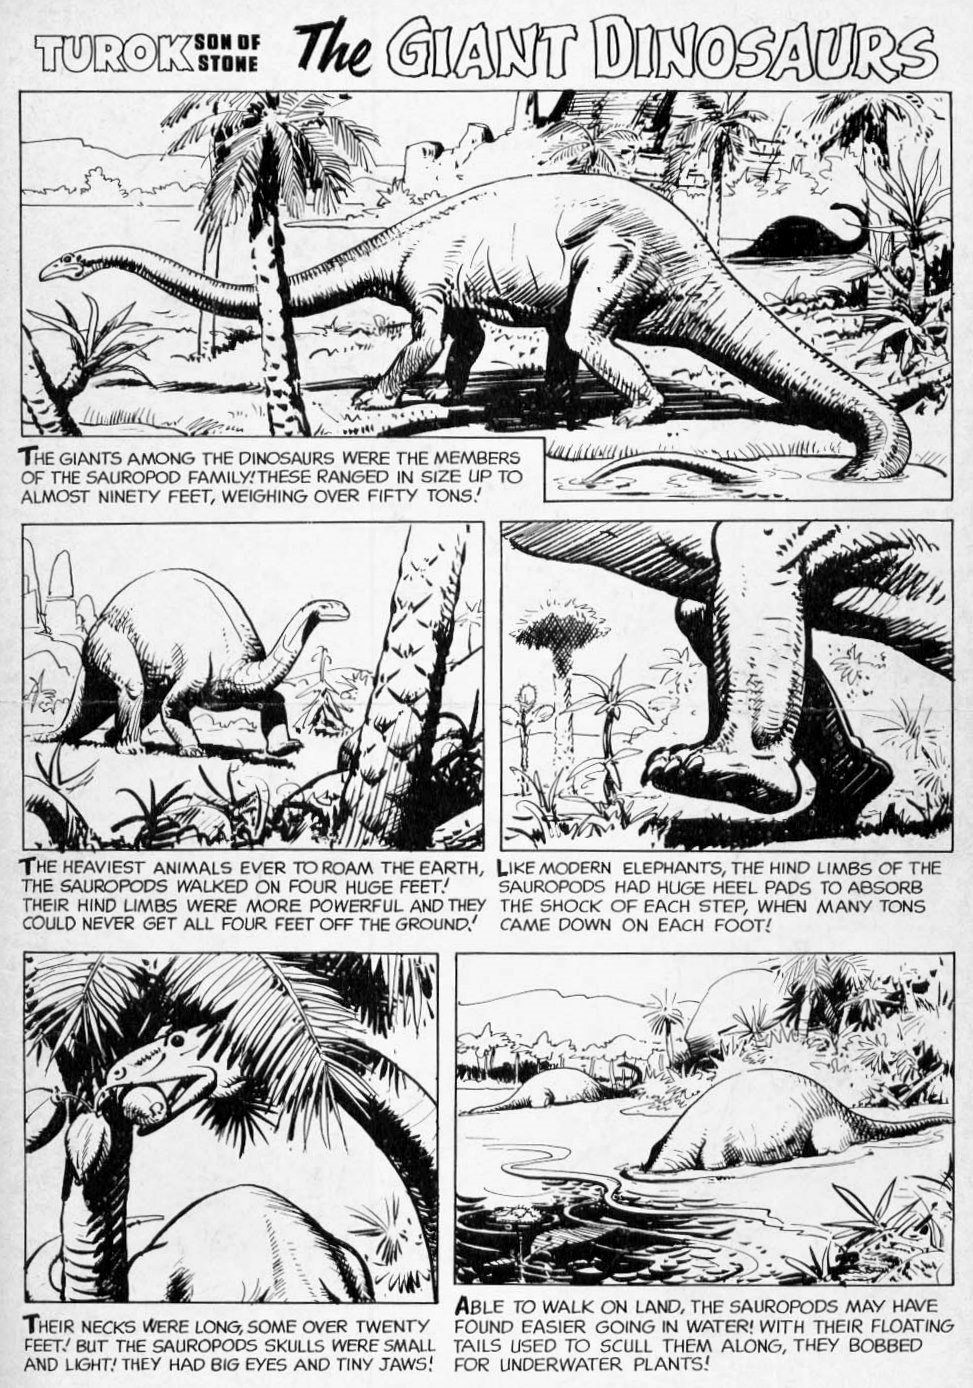 dinosaurs of turok  complete black and white gallery